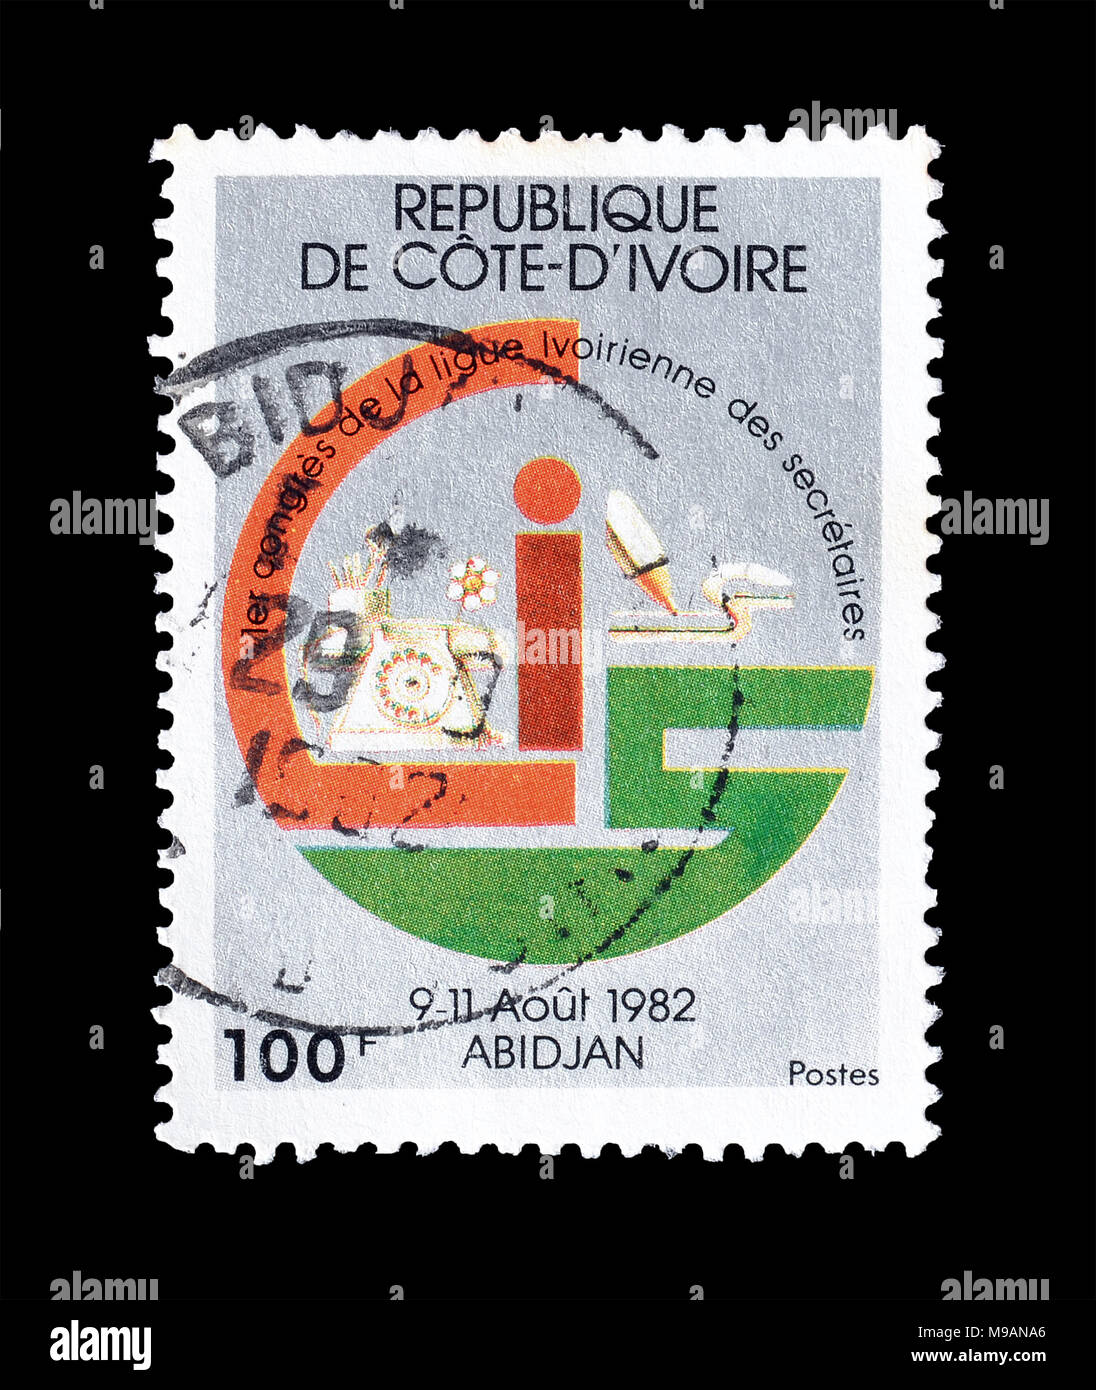 Cancelled postage stamp printed by Ivory Coast, that promotes League of Ivory Coast Secretaries, circa 1982. - Stock Image